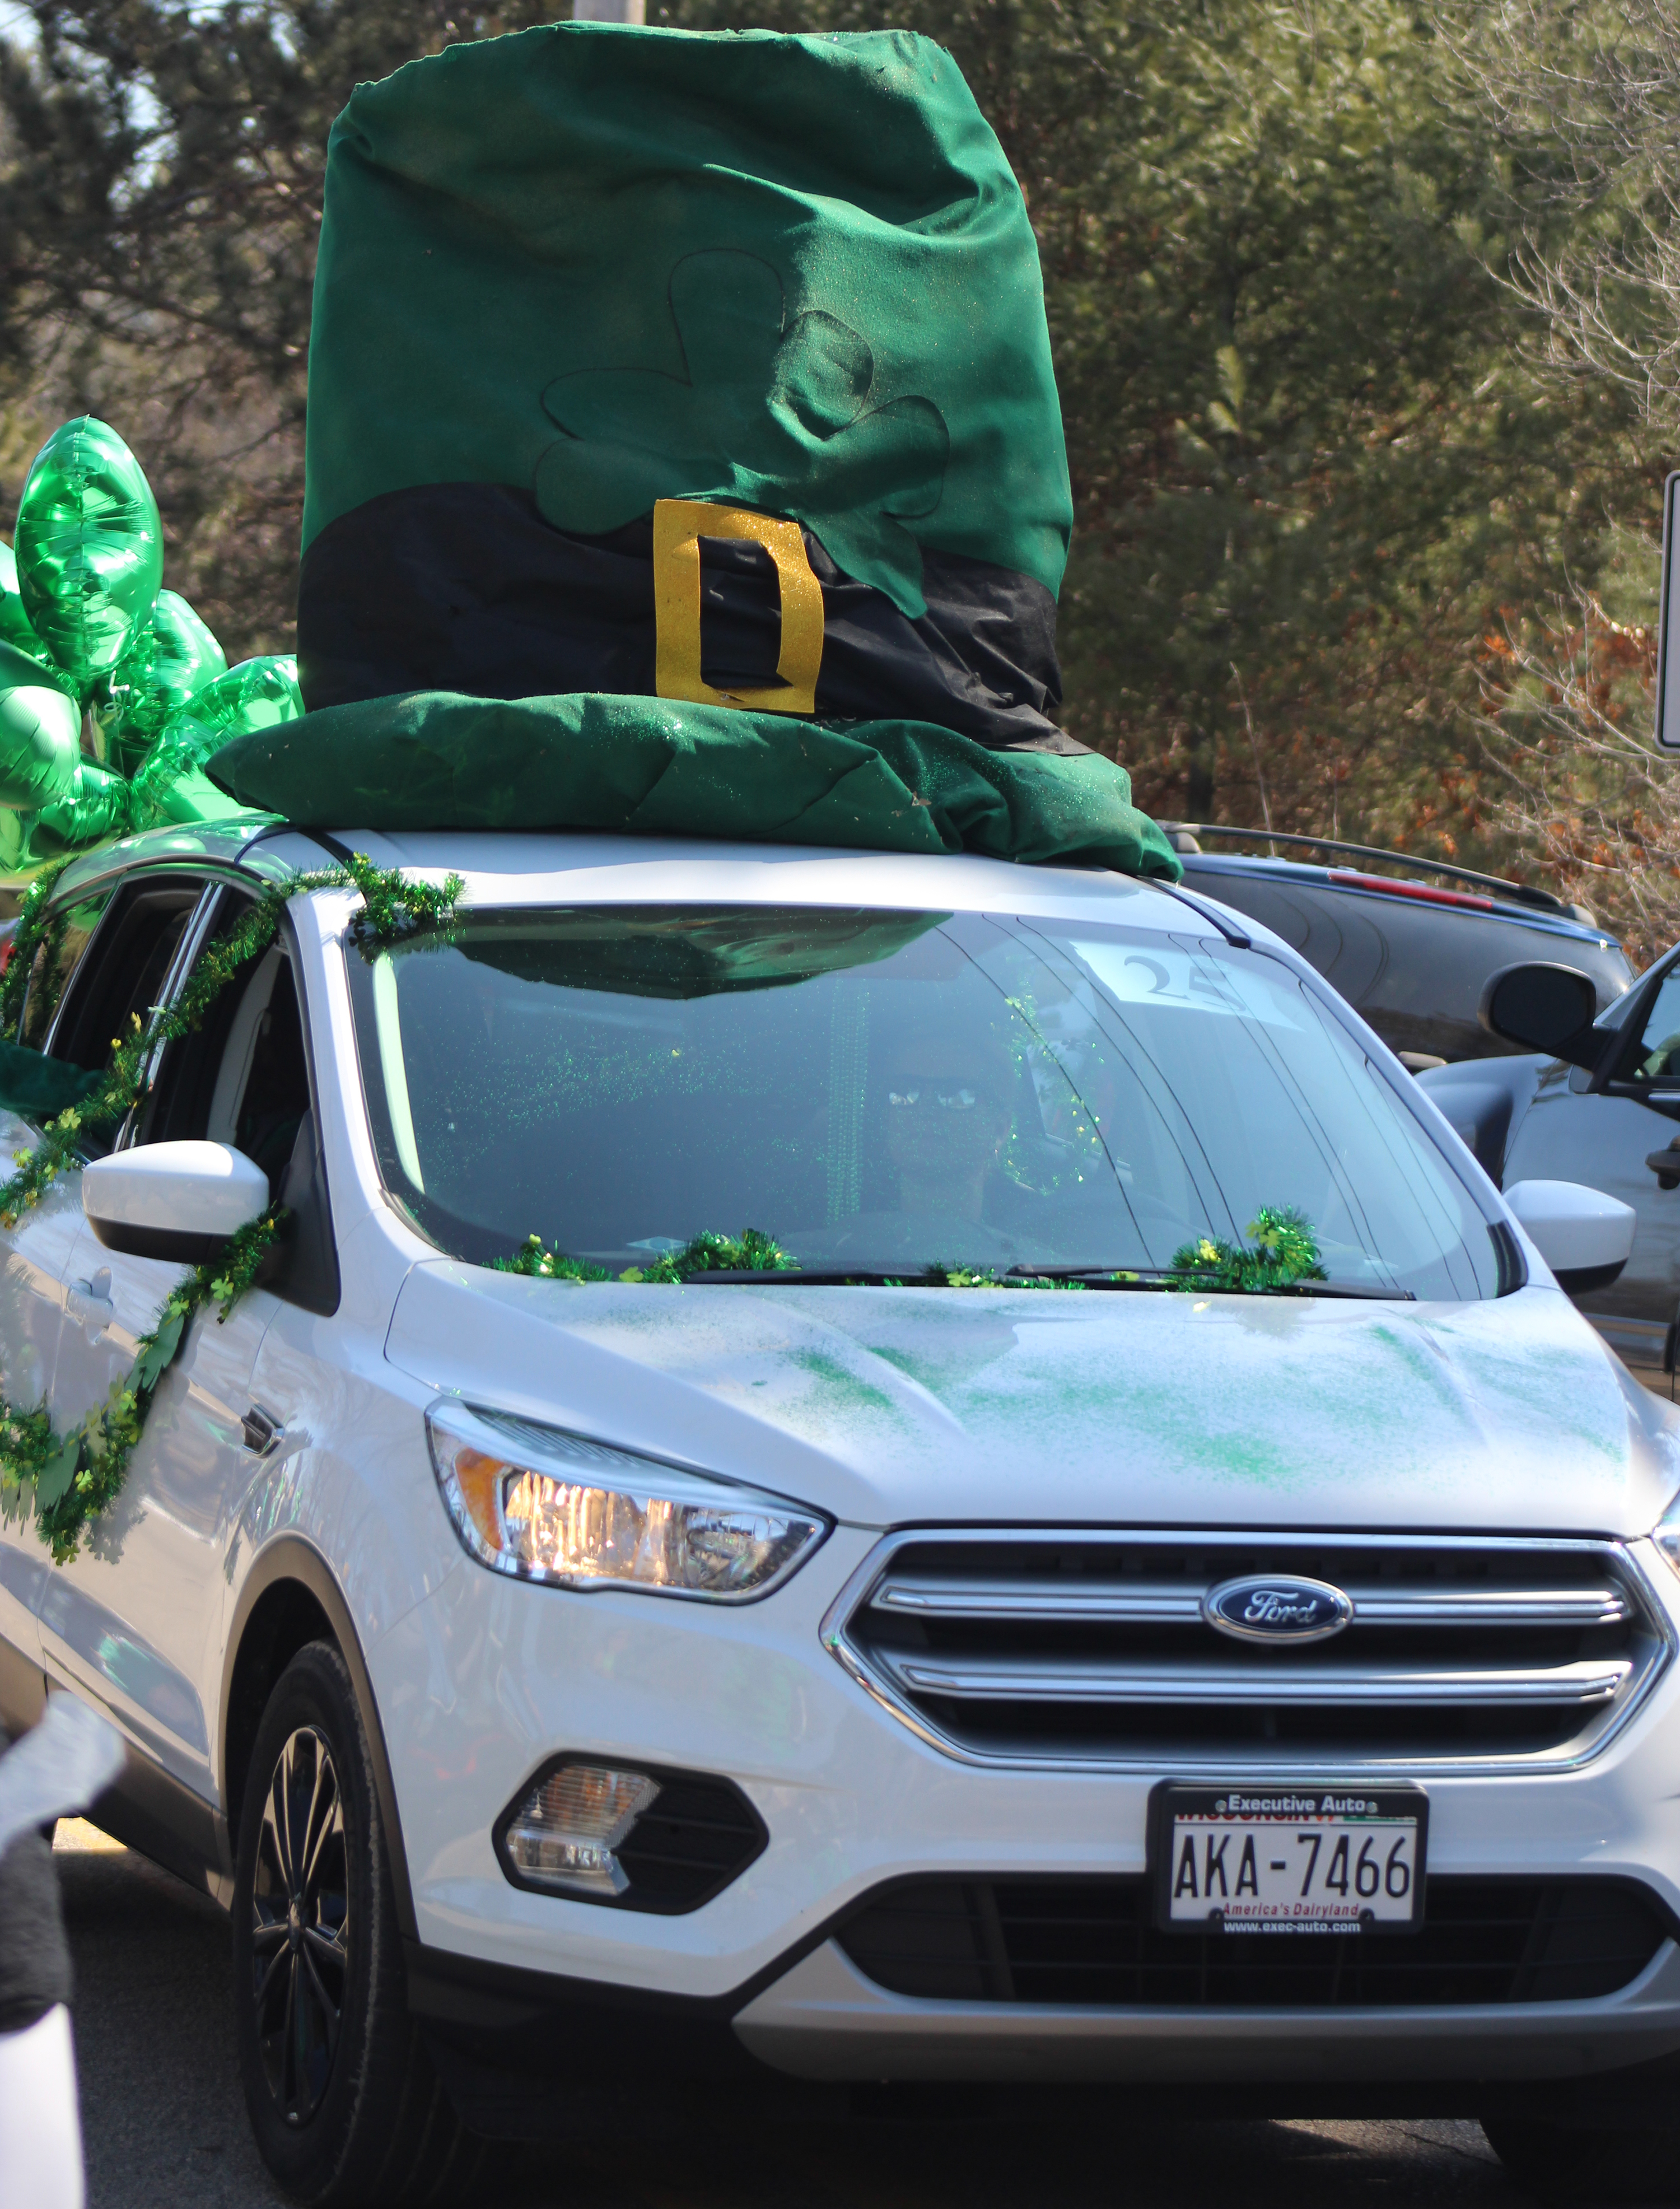 It wasn't just people donning green leprechaun hats at the Mooseyard St. Patrick's Day parade March 13. Vehicles were also decorated for the holiday event.(Lee Pulaski | NEW Media)